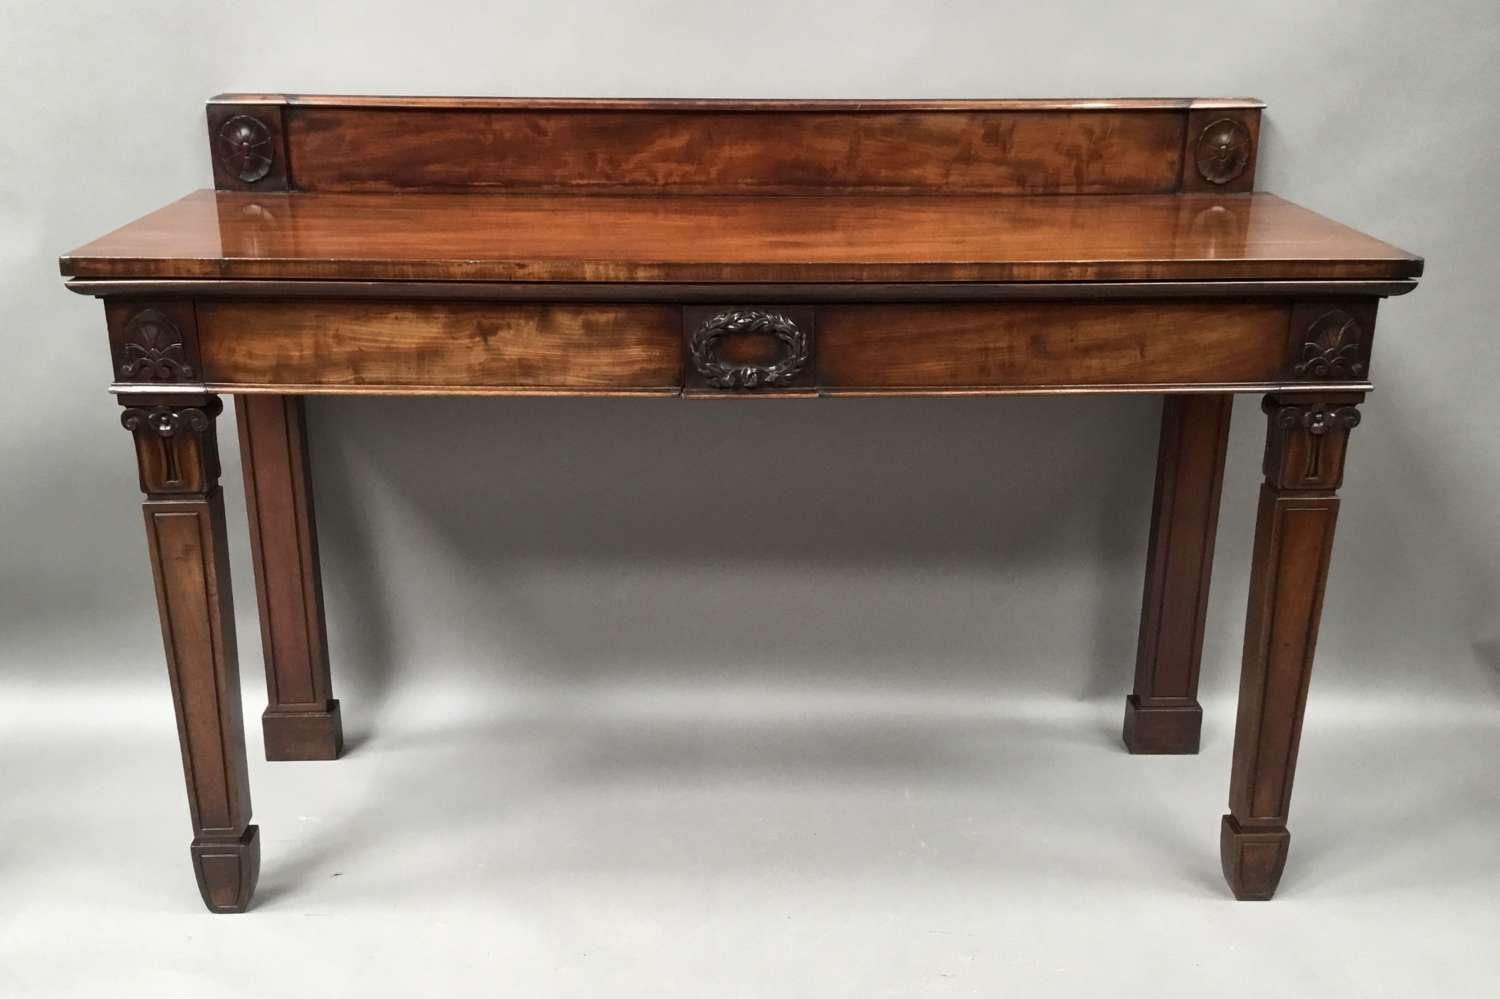 Regency mahogany neoclassical side / serving table